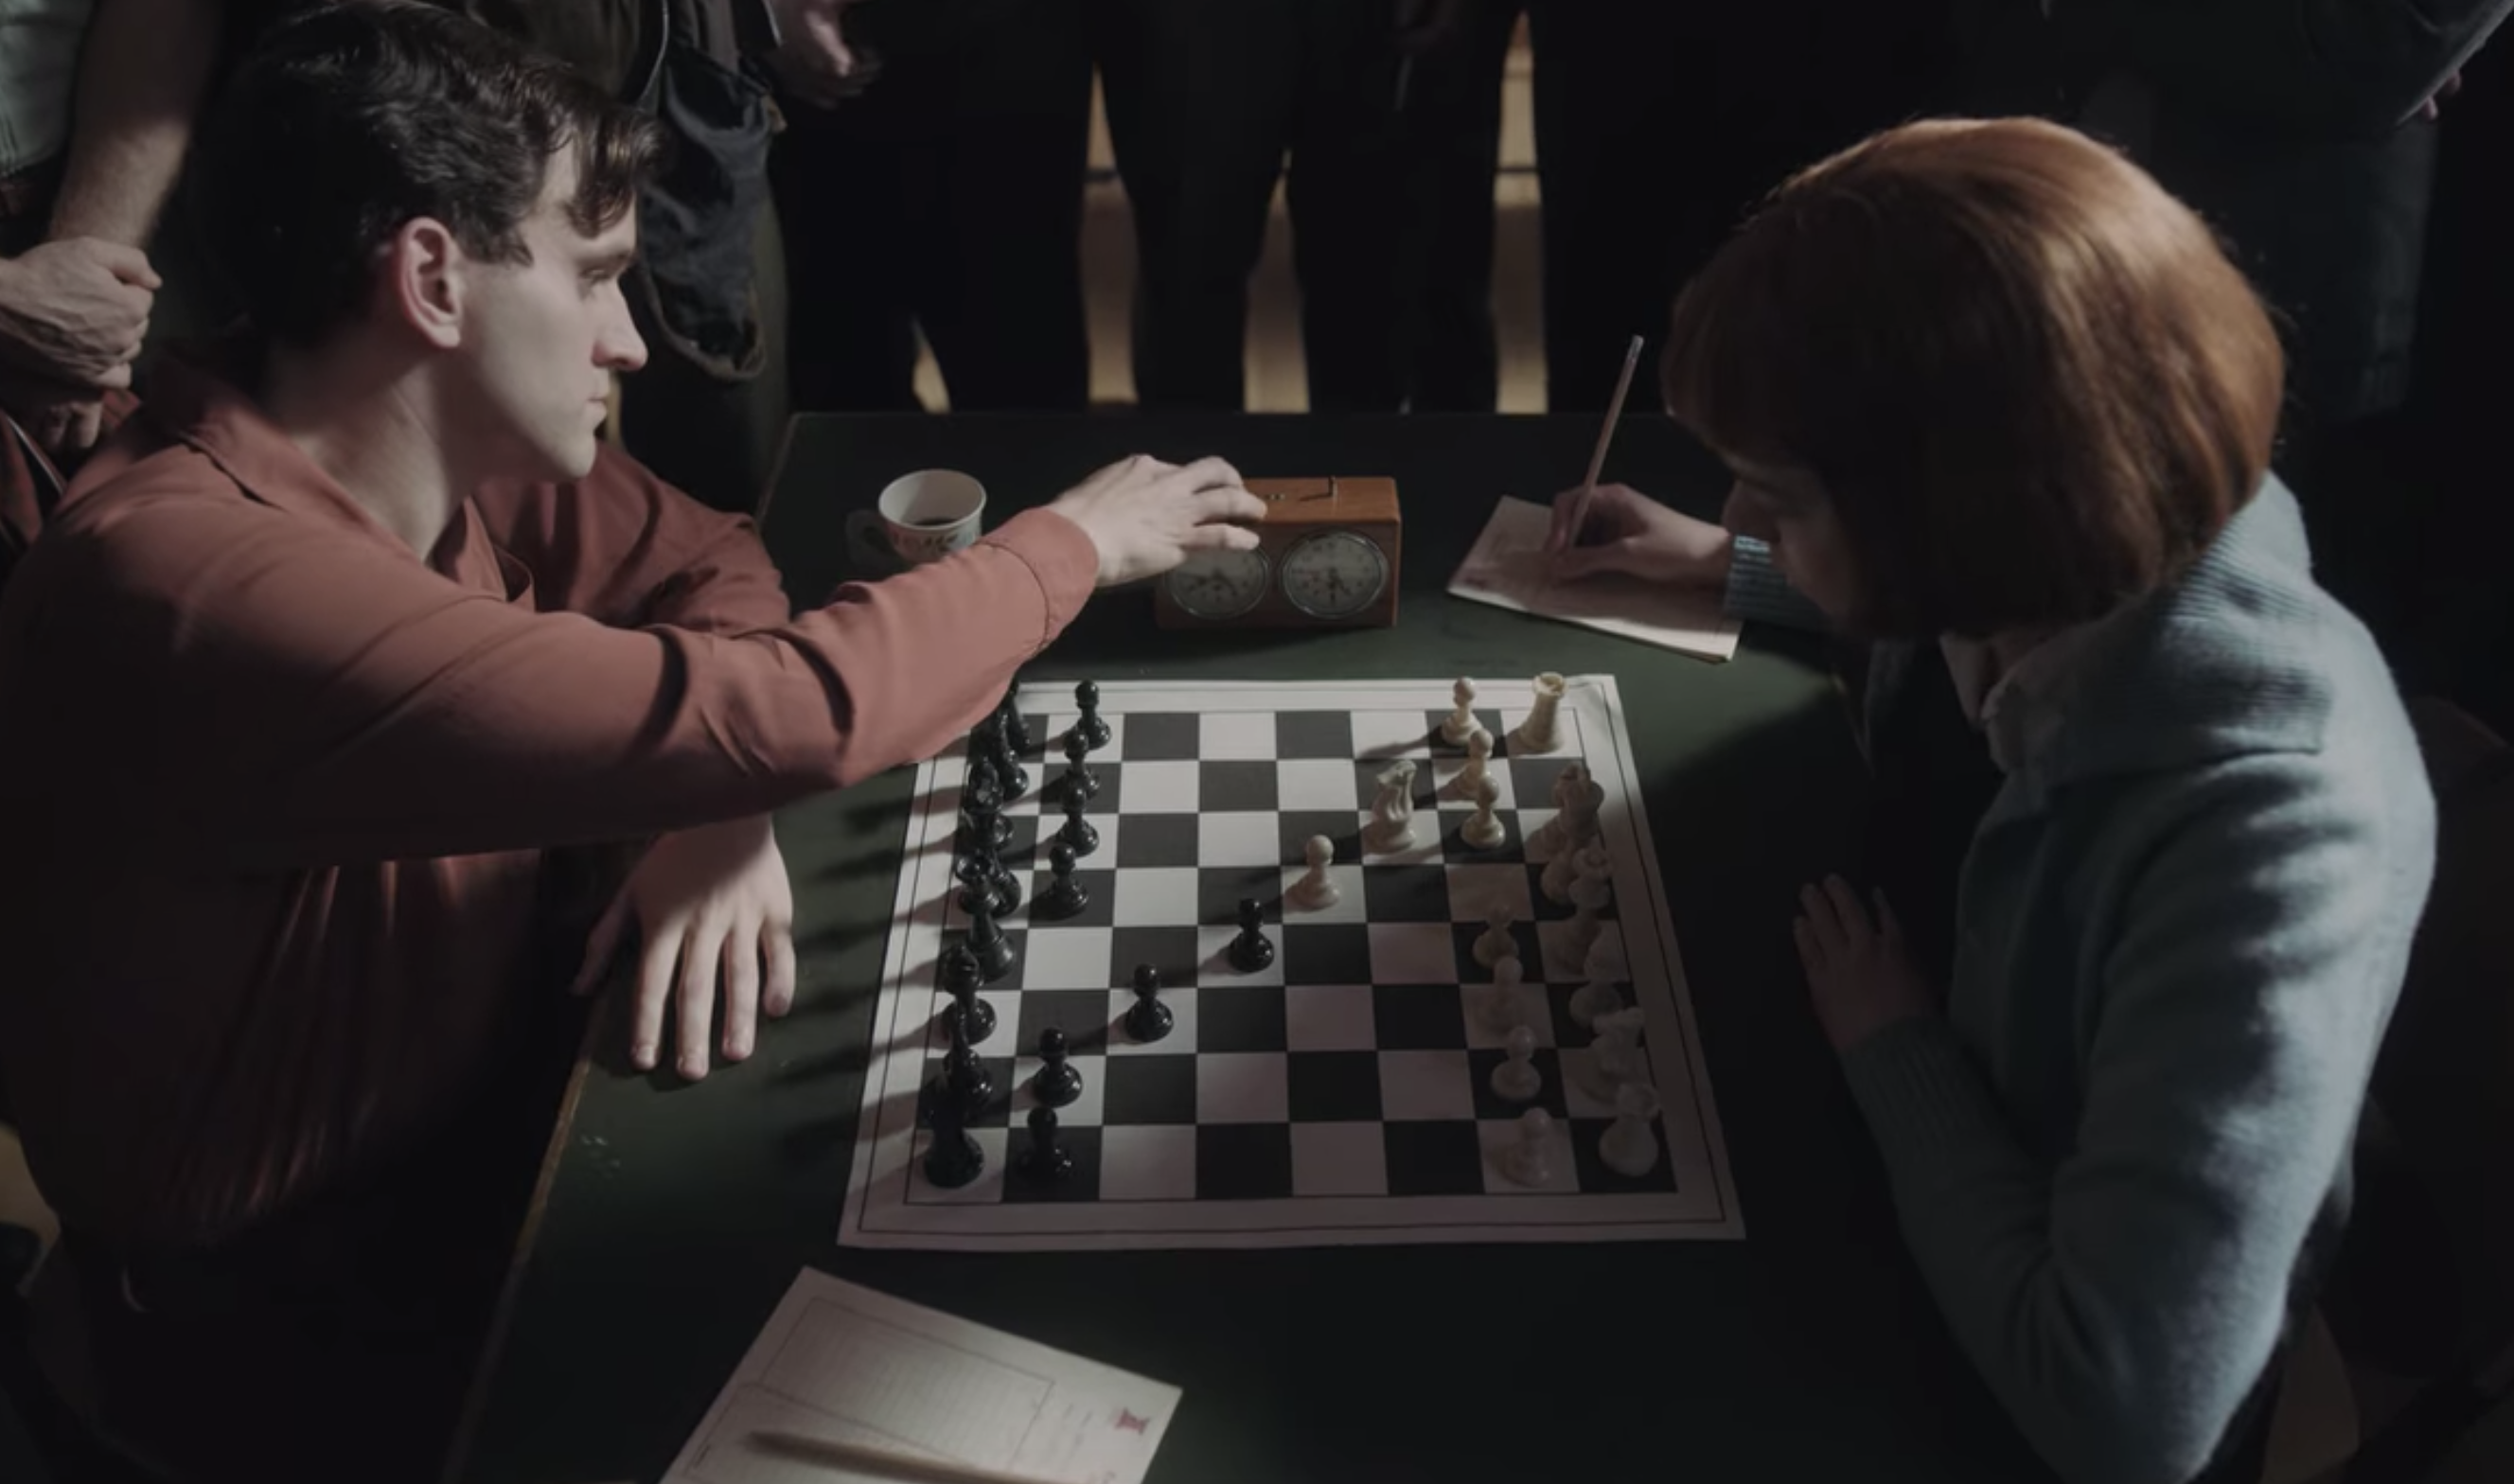 Beth playing a game of chess